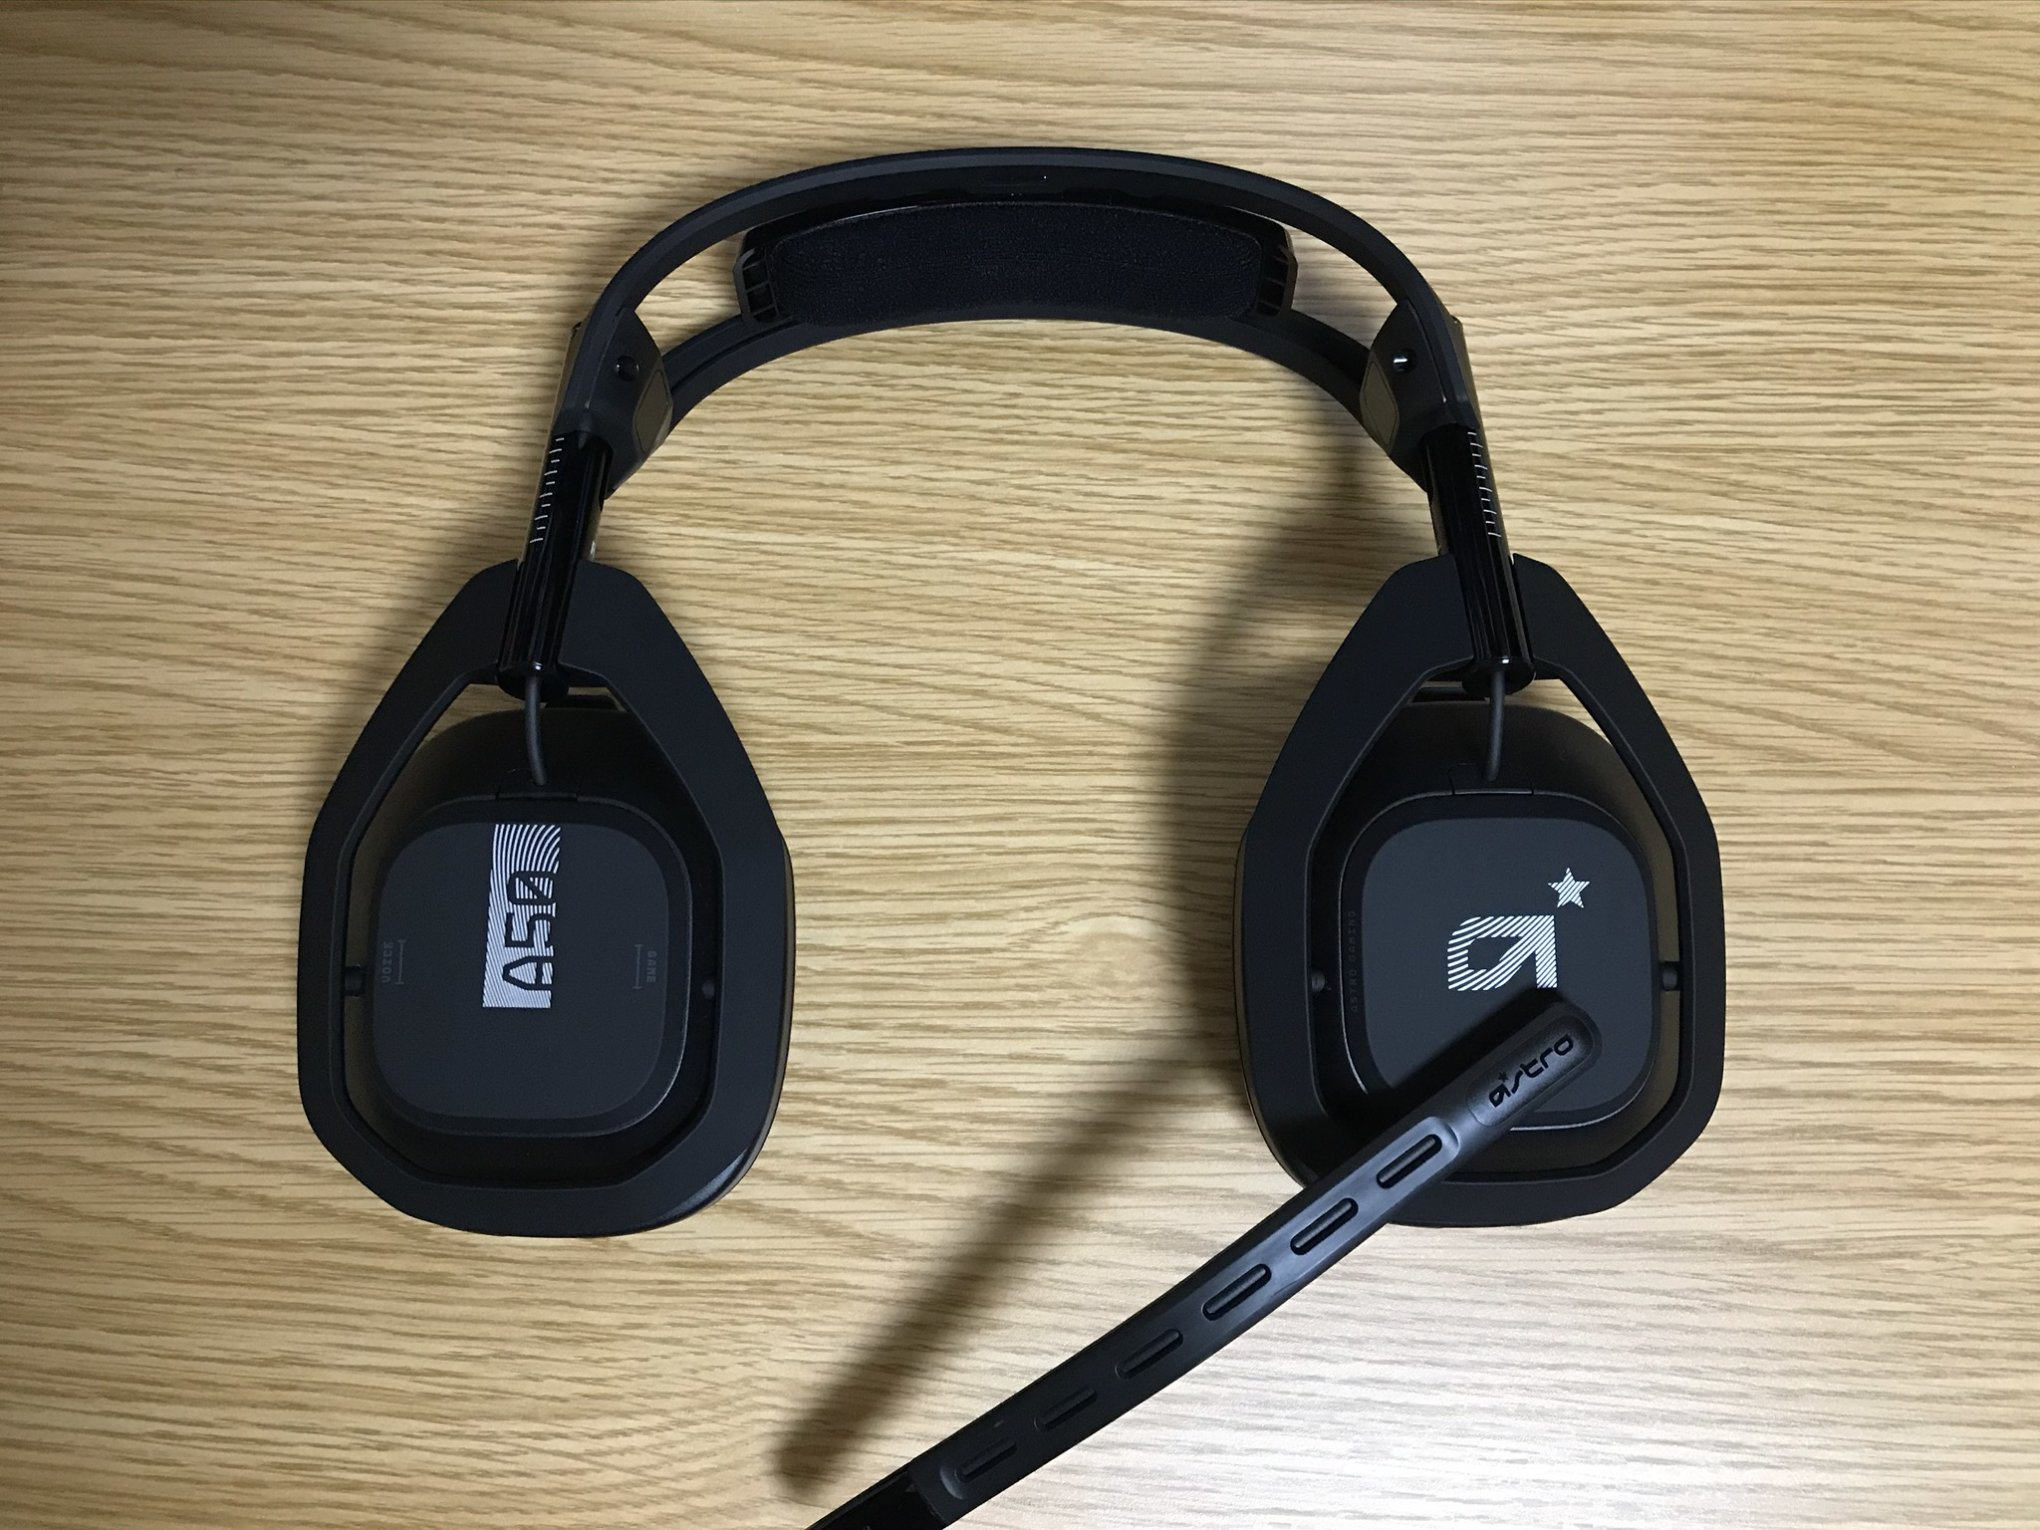 ASTRO A50 WIRELESS + BASE STATIONイヤーパッド90°